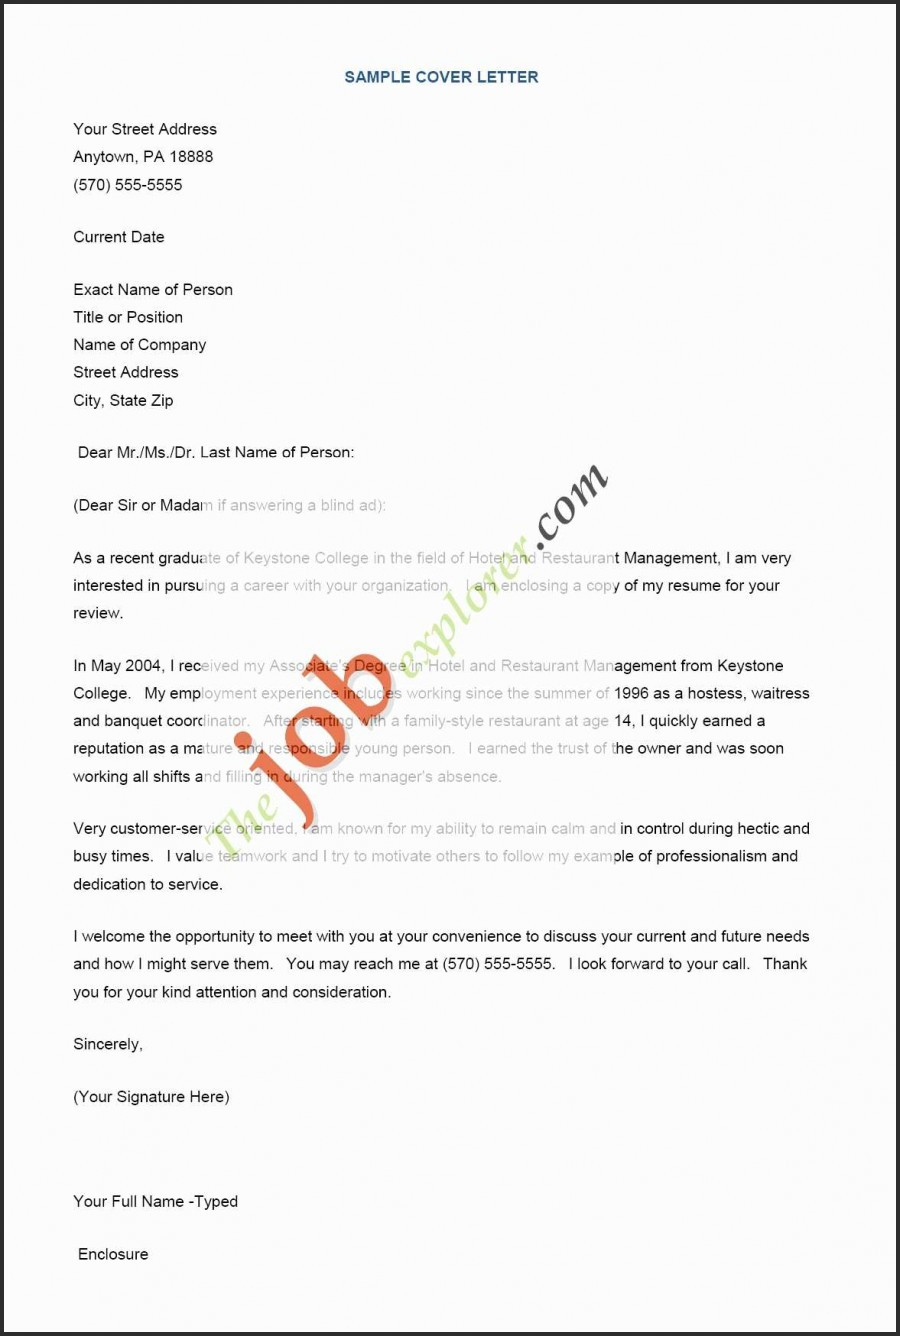 Resume Templates Latex - Curriculum Vitae Templates Latex Awesome 23 Luxury Resume Templates